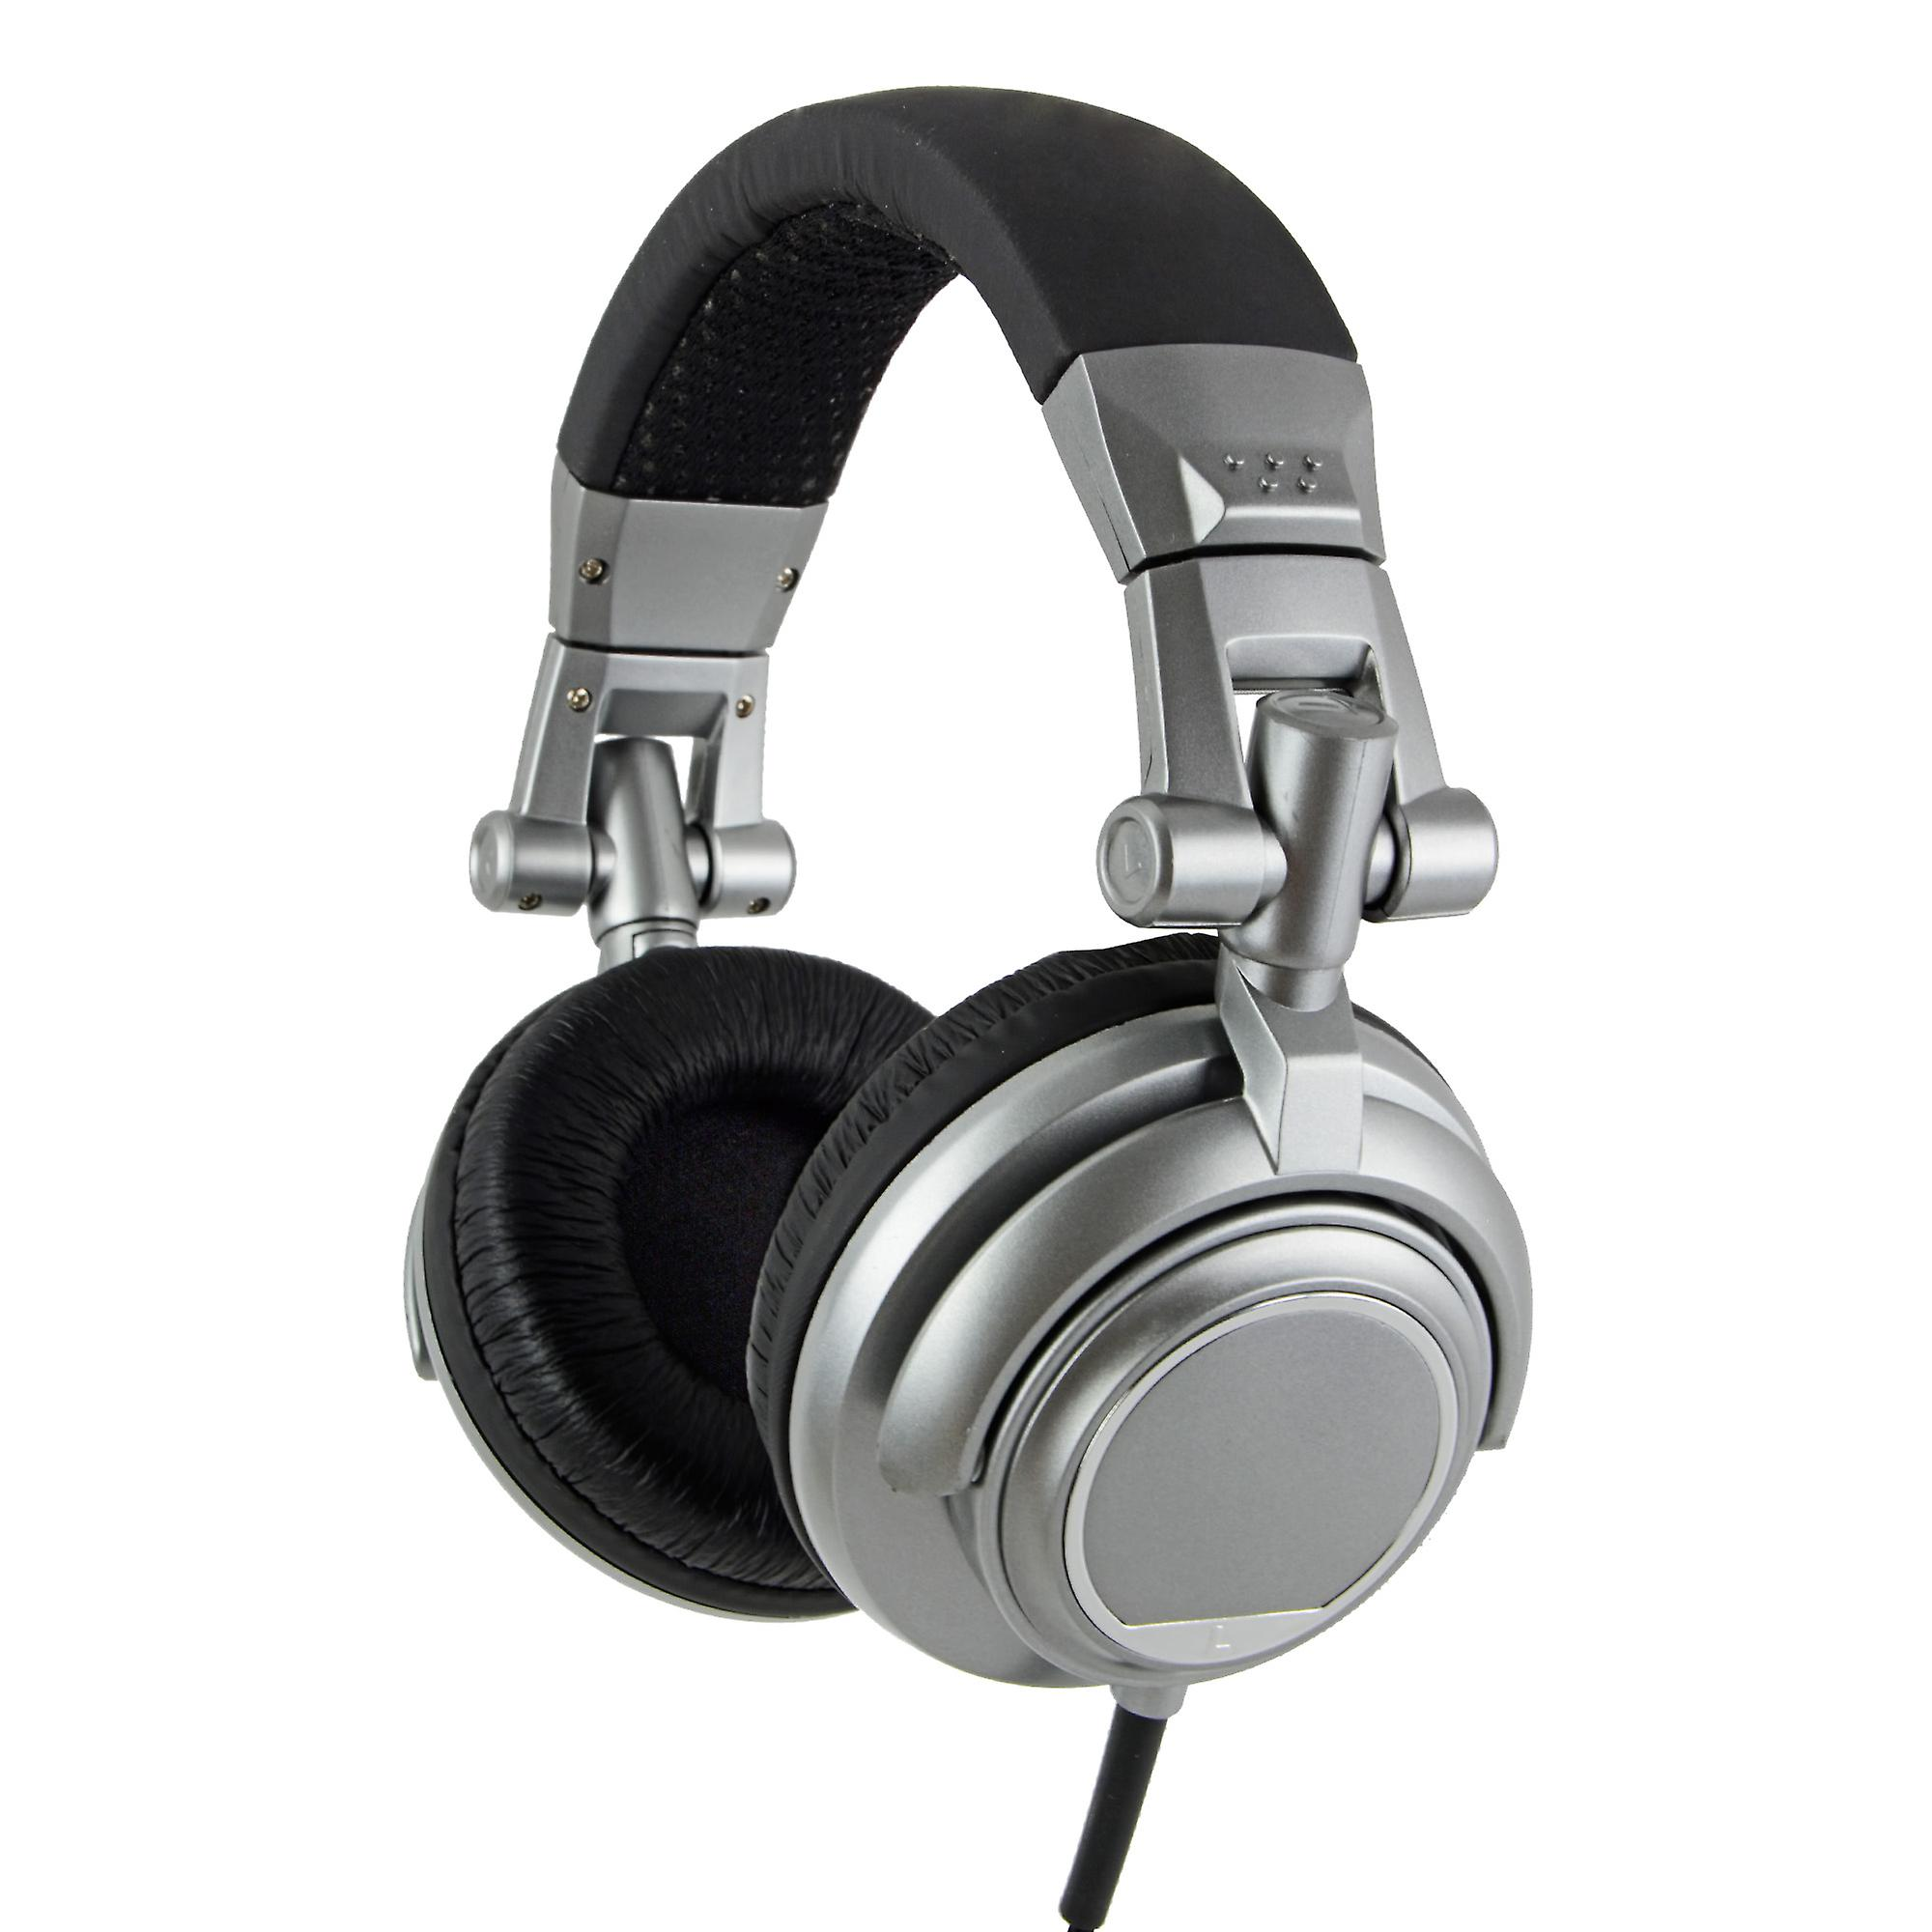 REYTID Noise Isolating Over-Ear Fully Adjustable Headphones Volume Control / Microphone 50mm Drivers Stereo DJ Compatible with iPhone Android Titanium 3.5mm Jack 90° Swivel Ear Cups